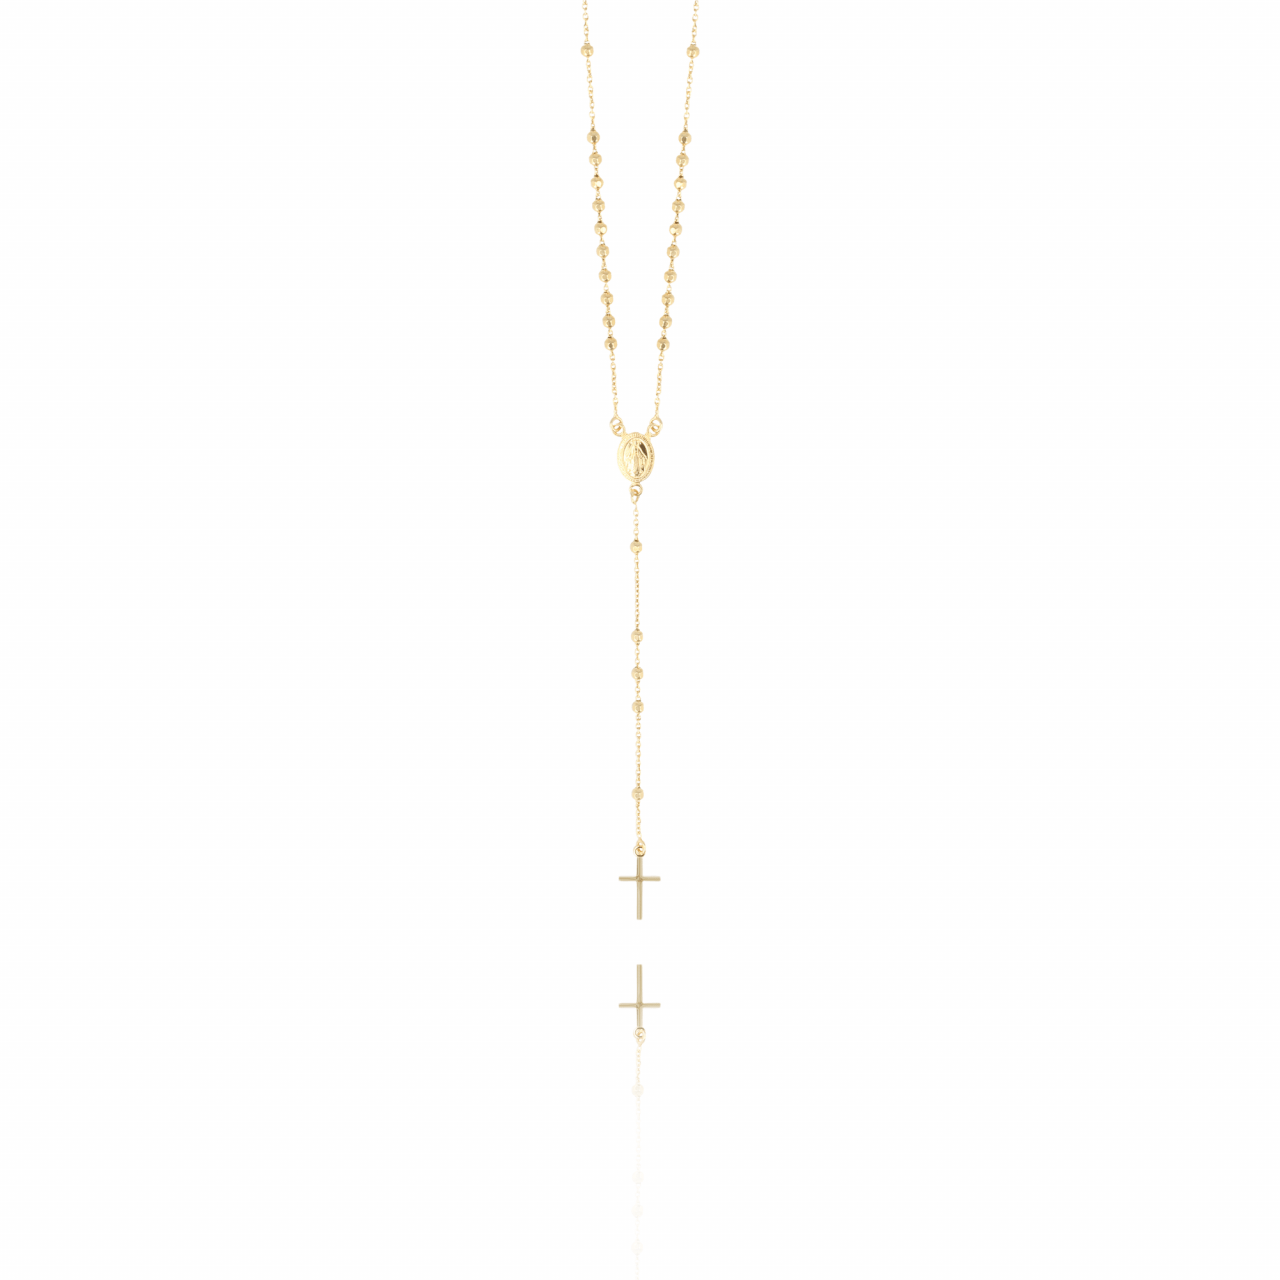 Golden Rosary Cross necklace